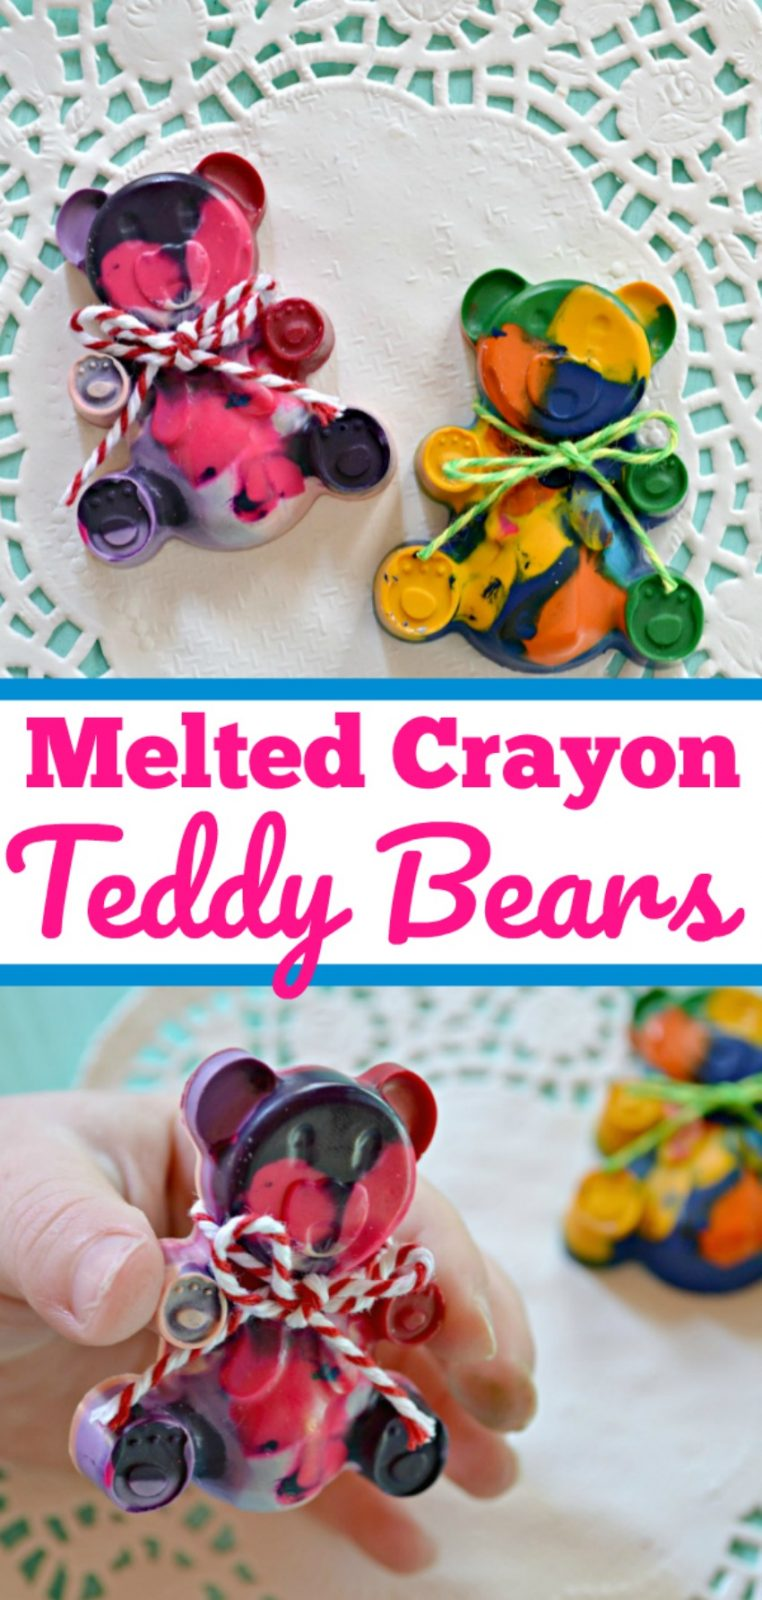 DIY Melted Crayon Teddy Bears